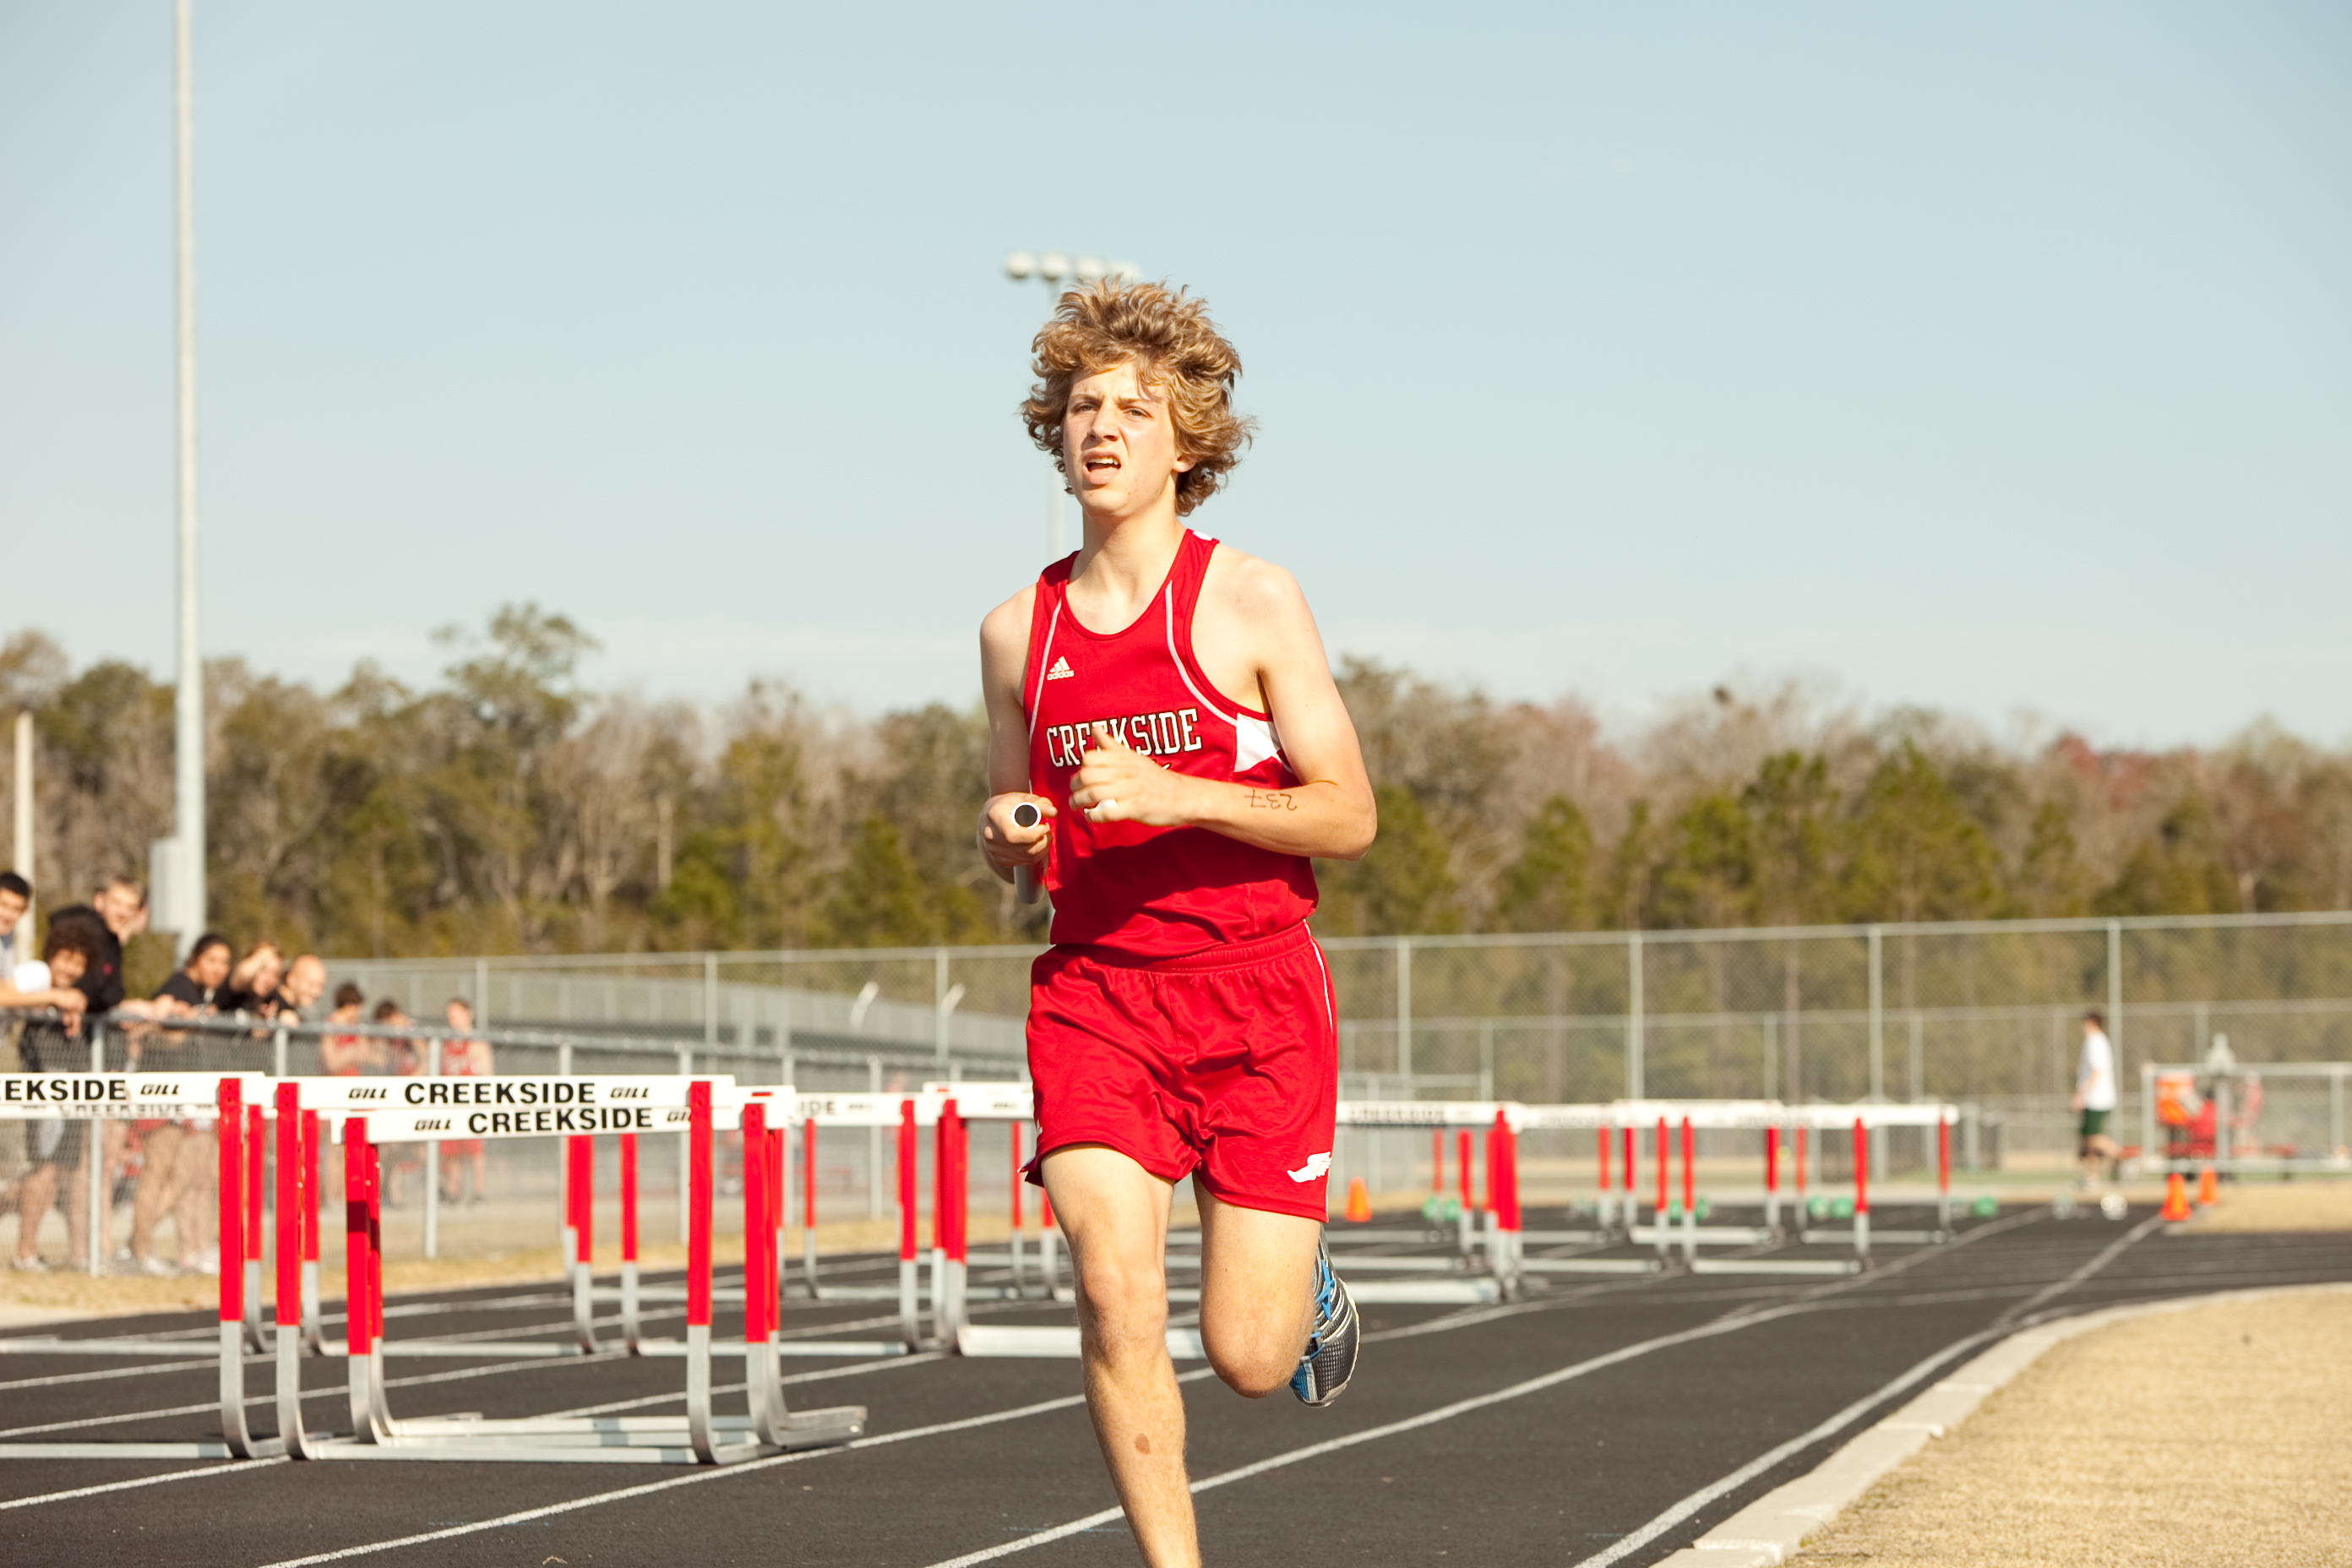 Ben Thiemann running track and field.